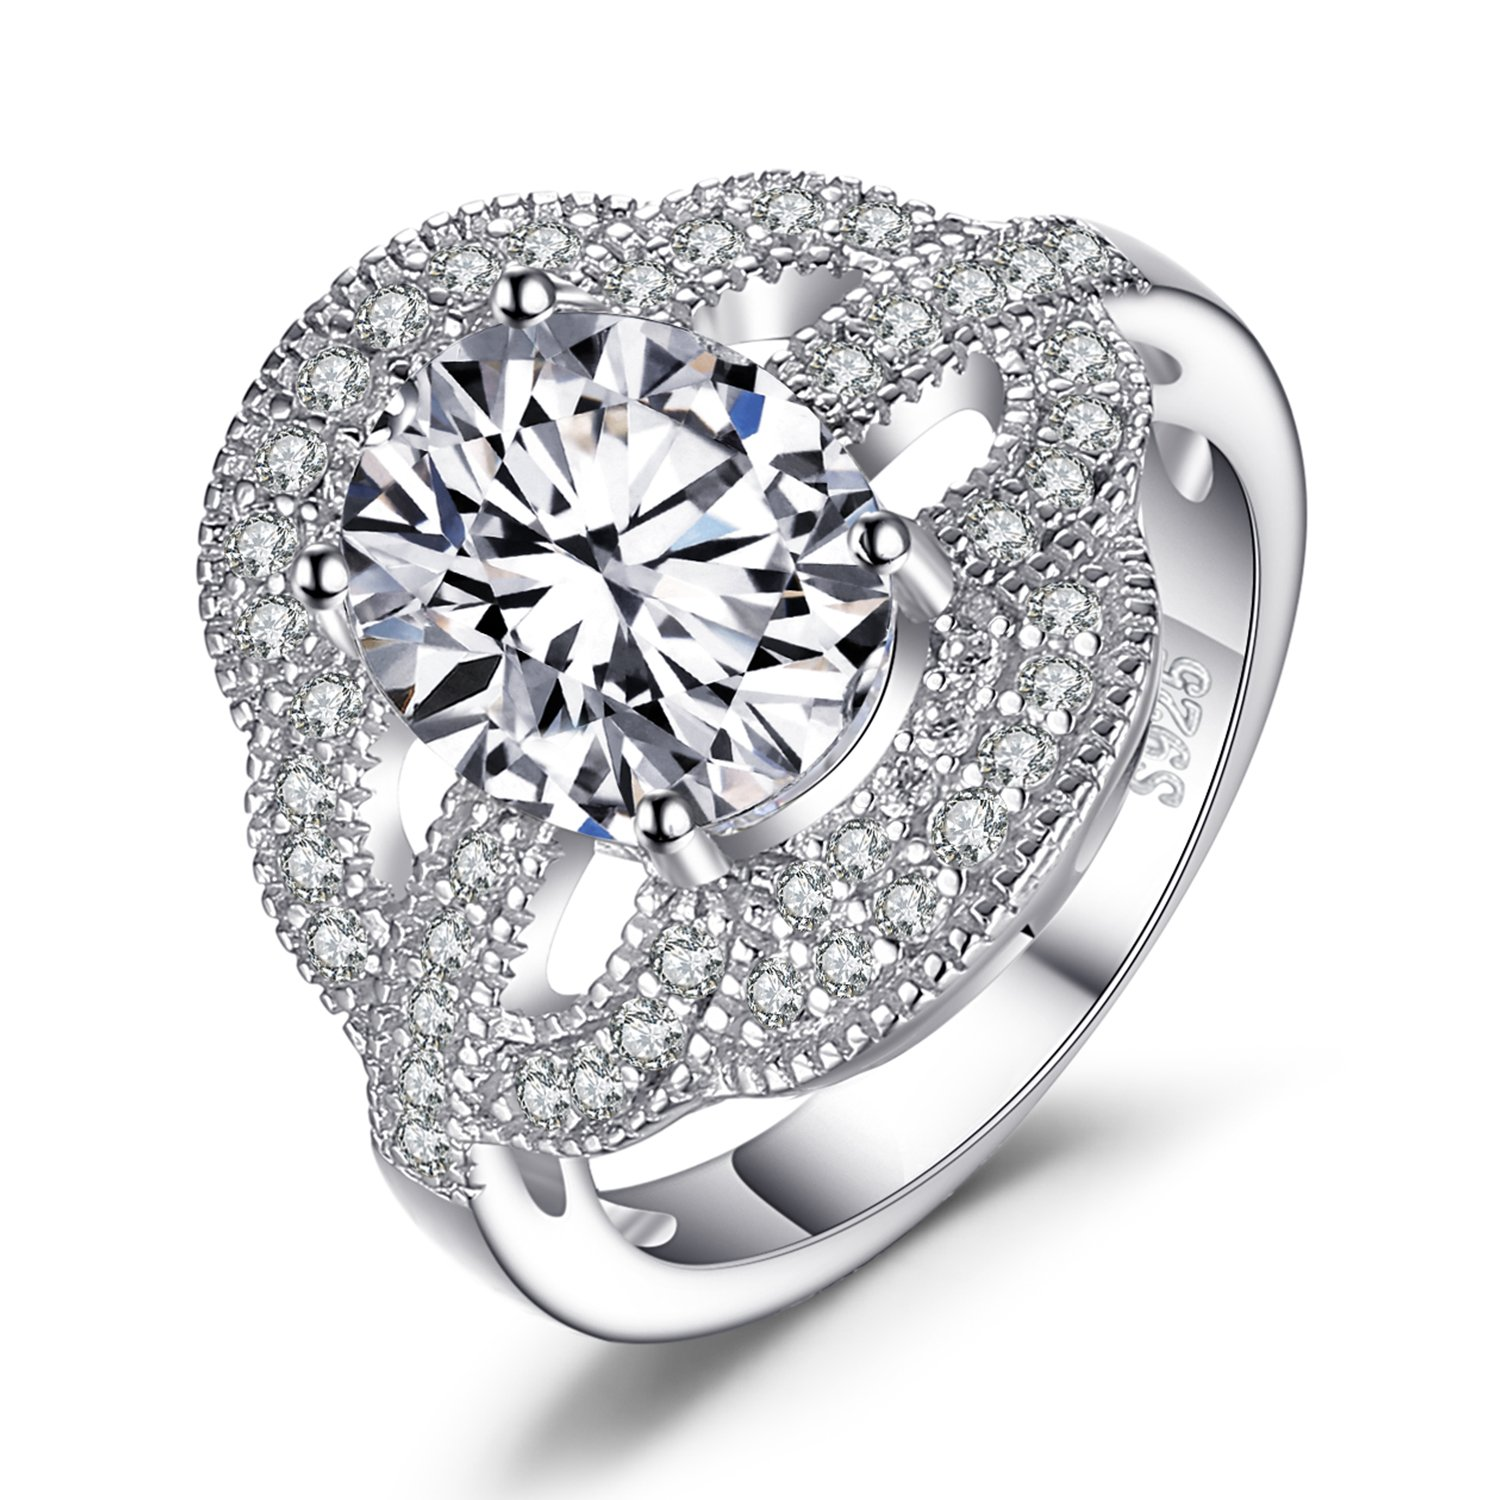 JewelryPalace Luxurious 3.8ct Cubic Zirconiae Engagement Ring 925 Sterling Silver Size 5